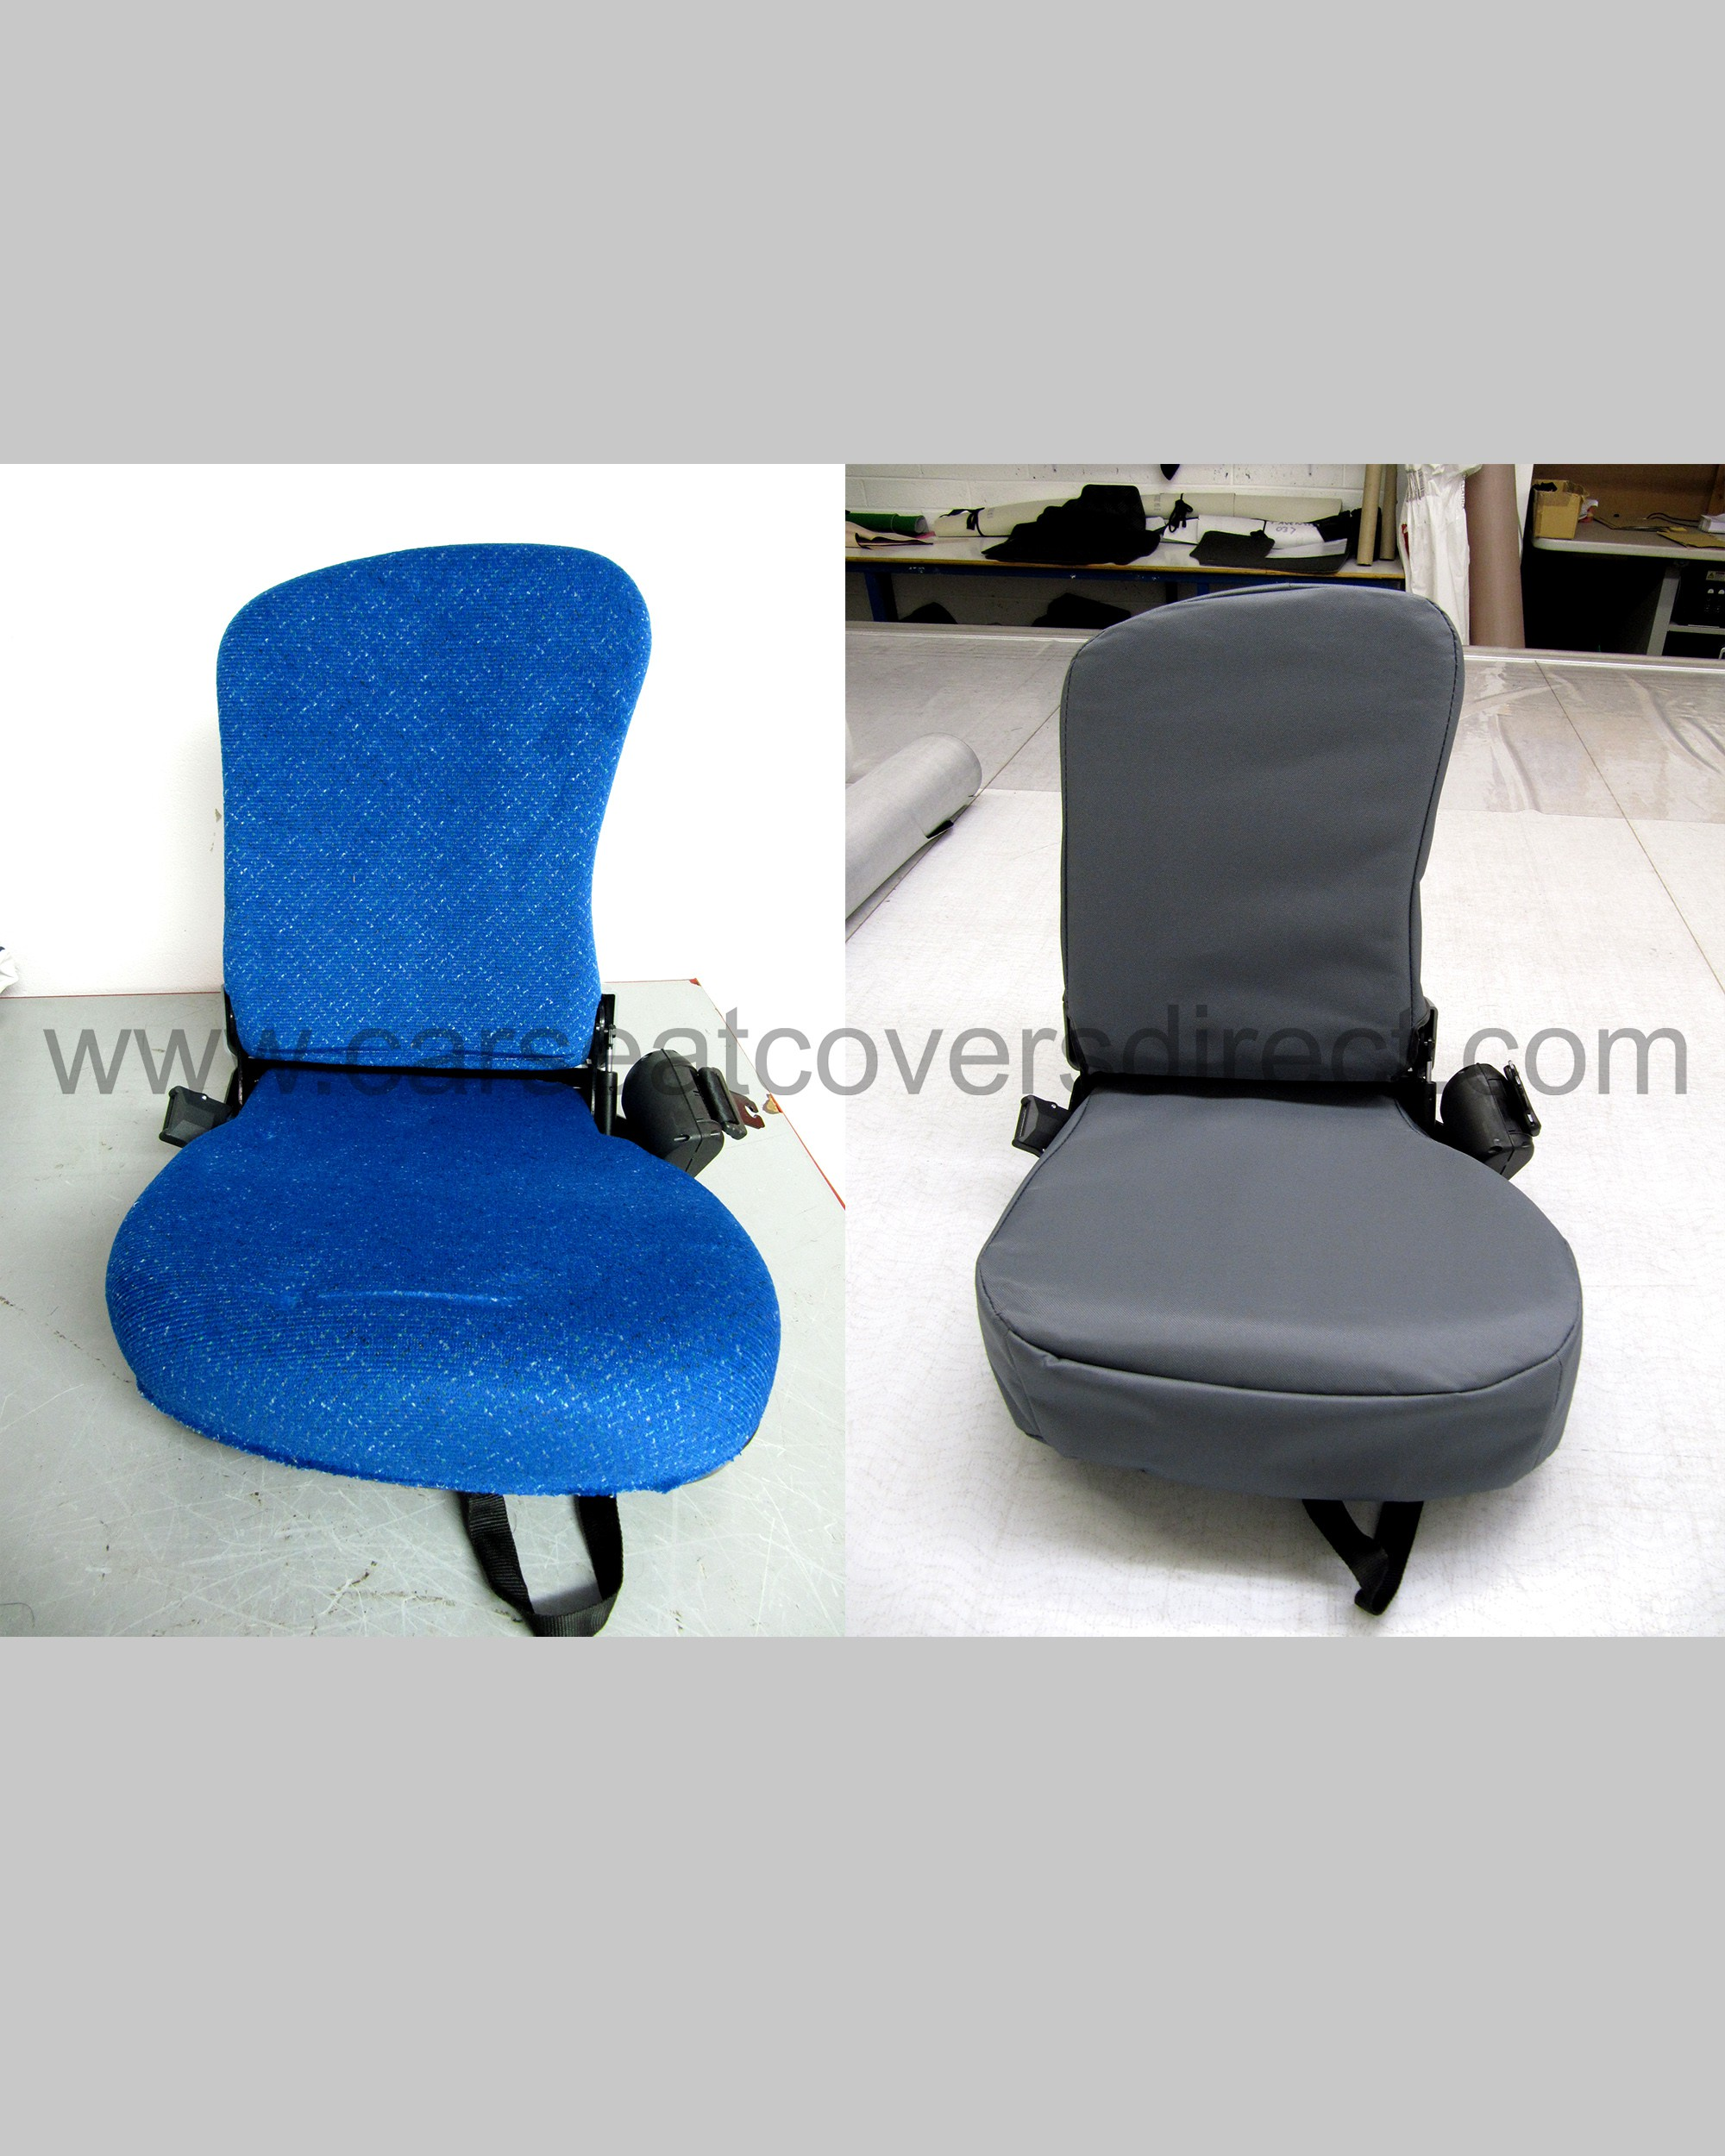 New Holland T6000 Series Seat Cover Before and After